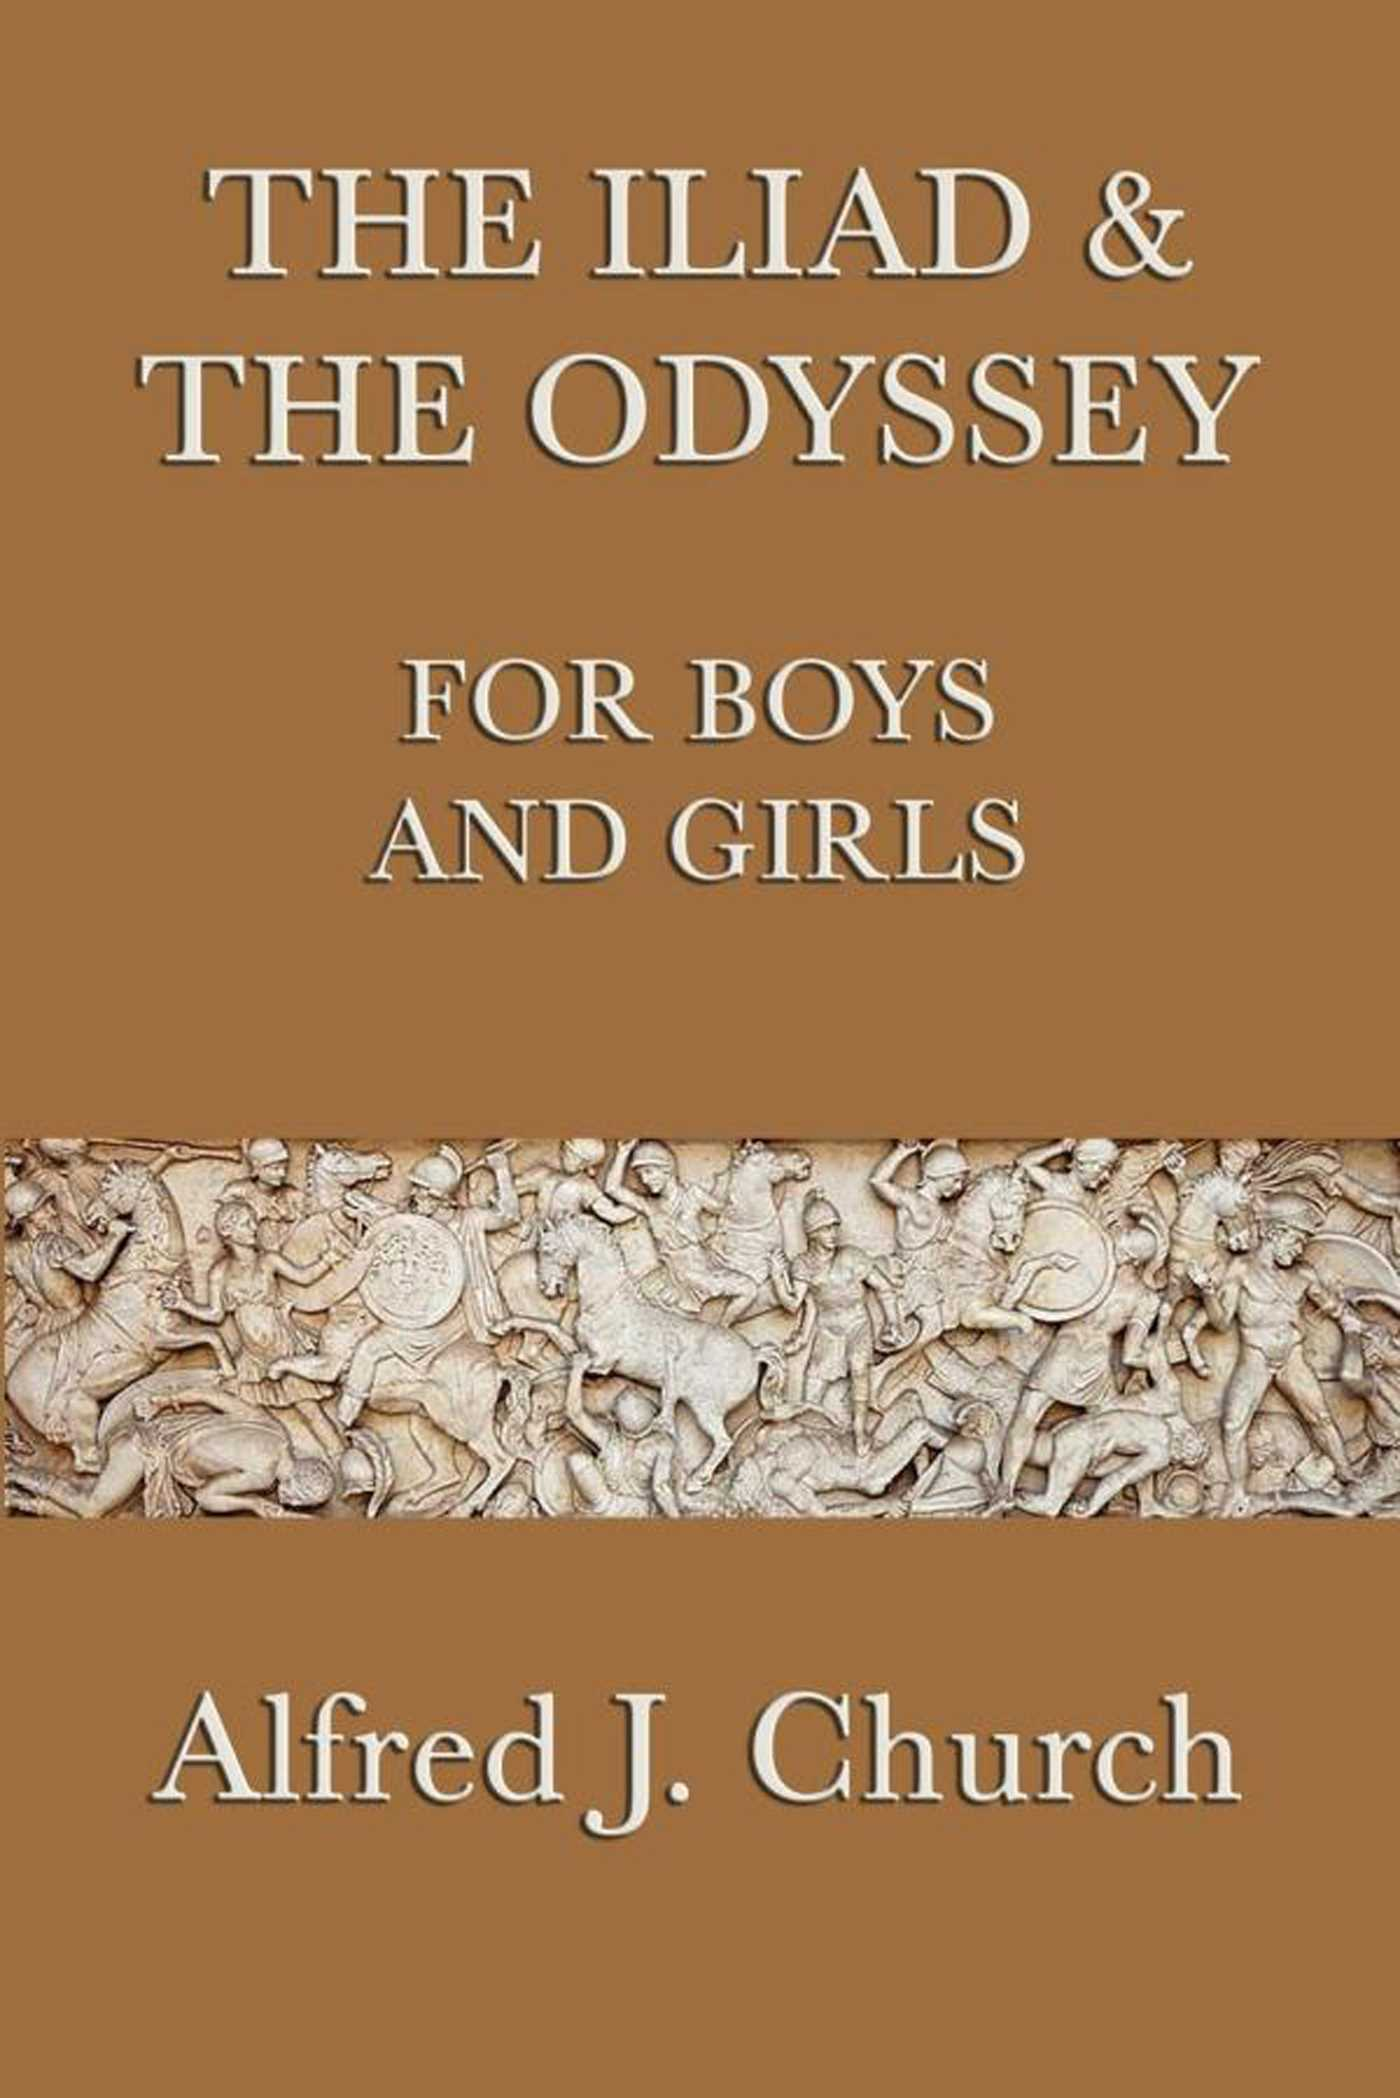 the iliad and the odyssey for boys and girls ebook by alfred j